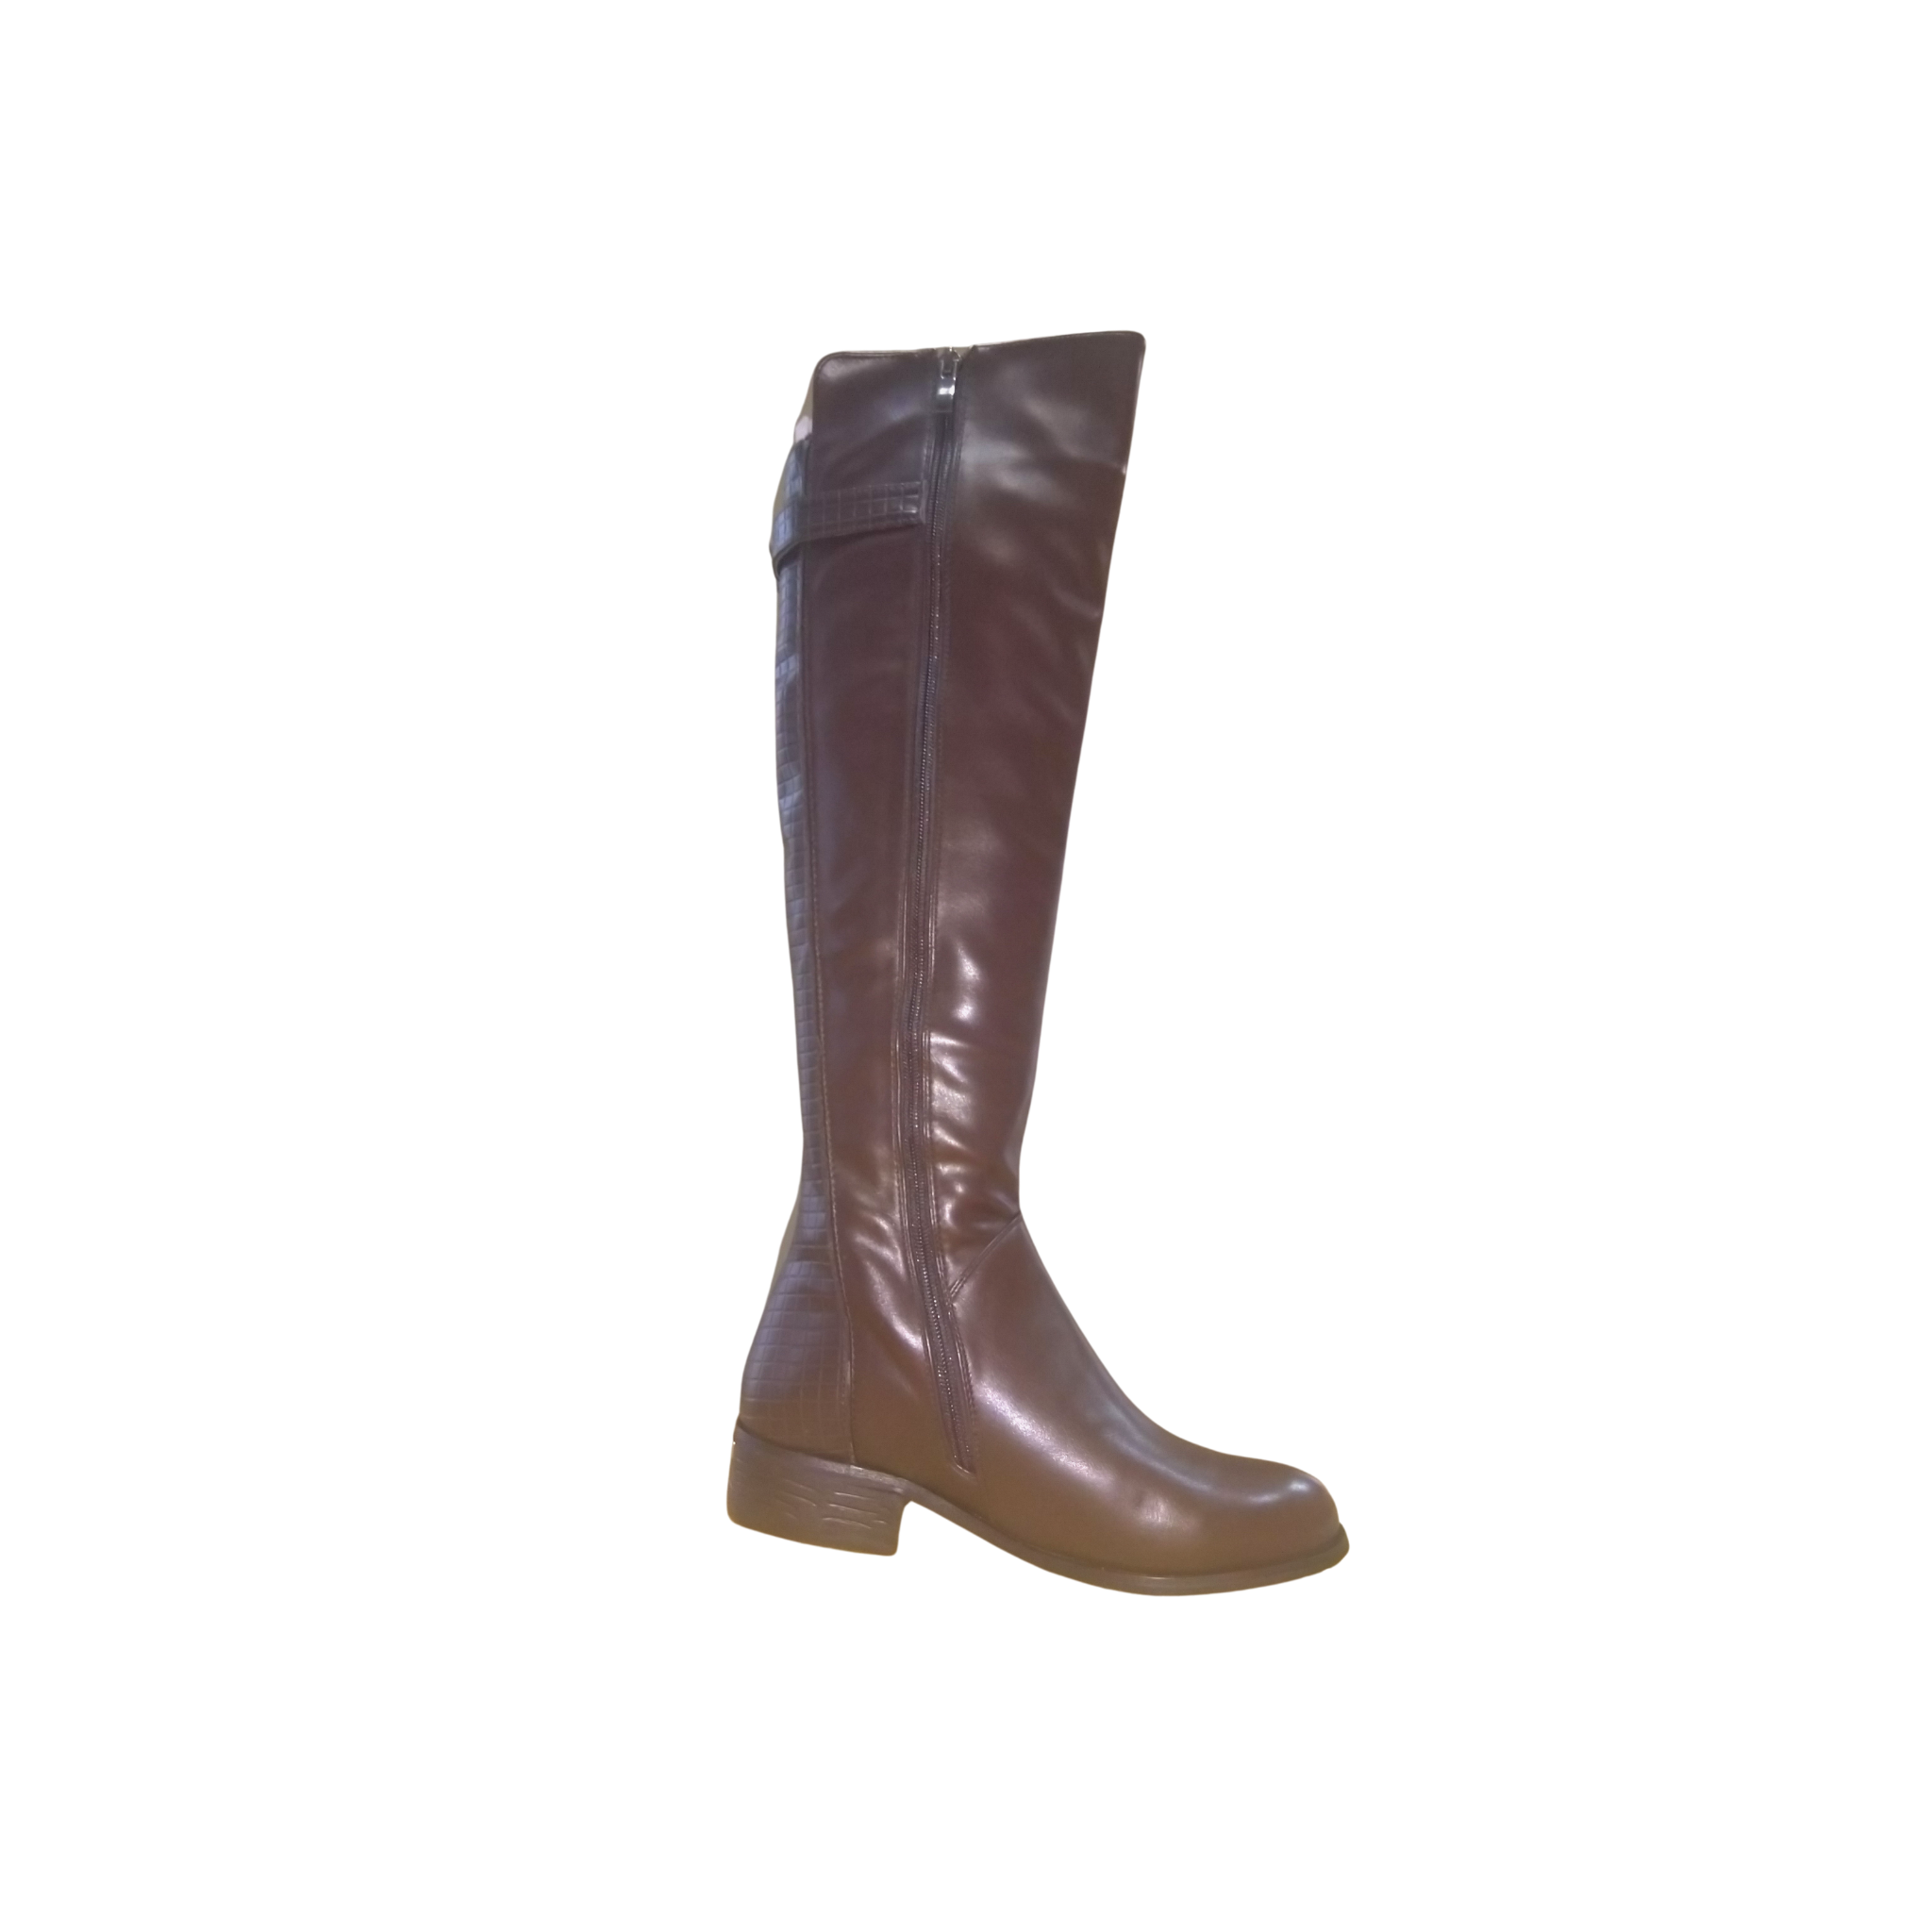 Reflexan Laufkomfort Brown Low-Heel Leather Knee High Winter Boots - MGworld